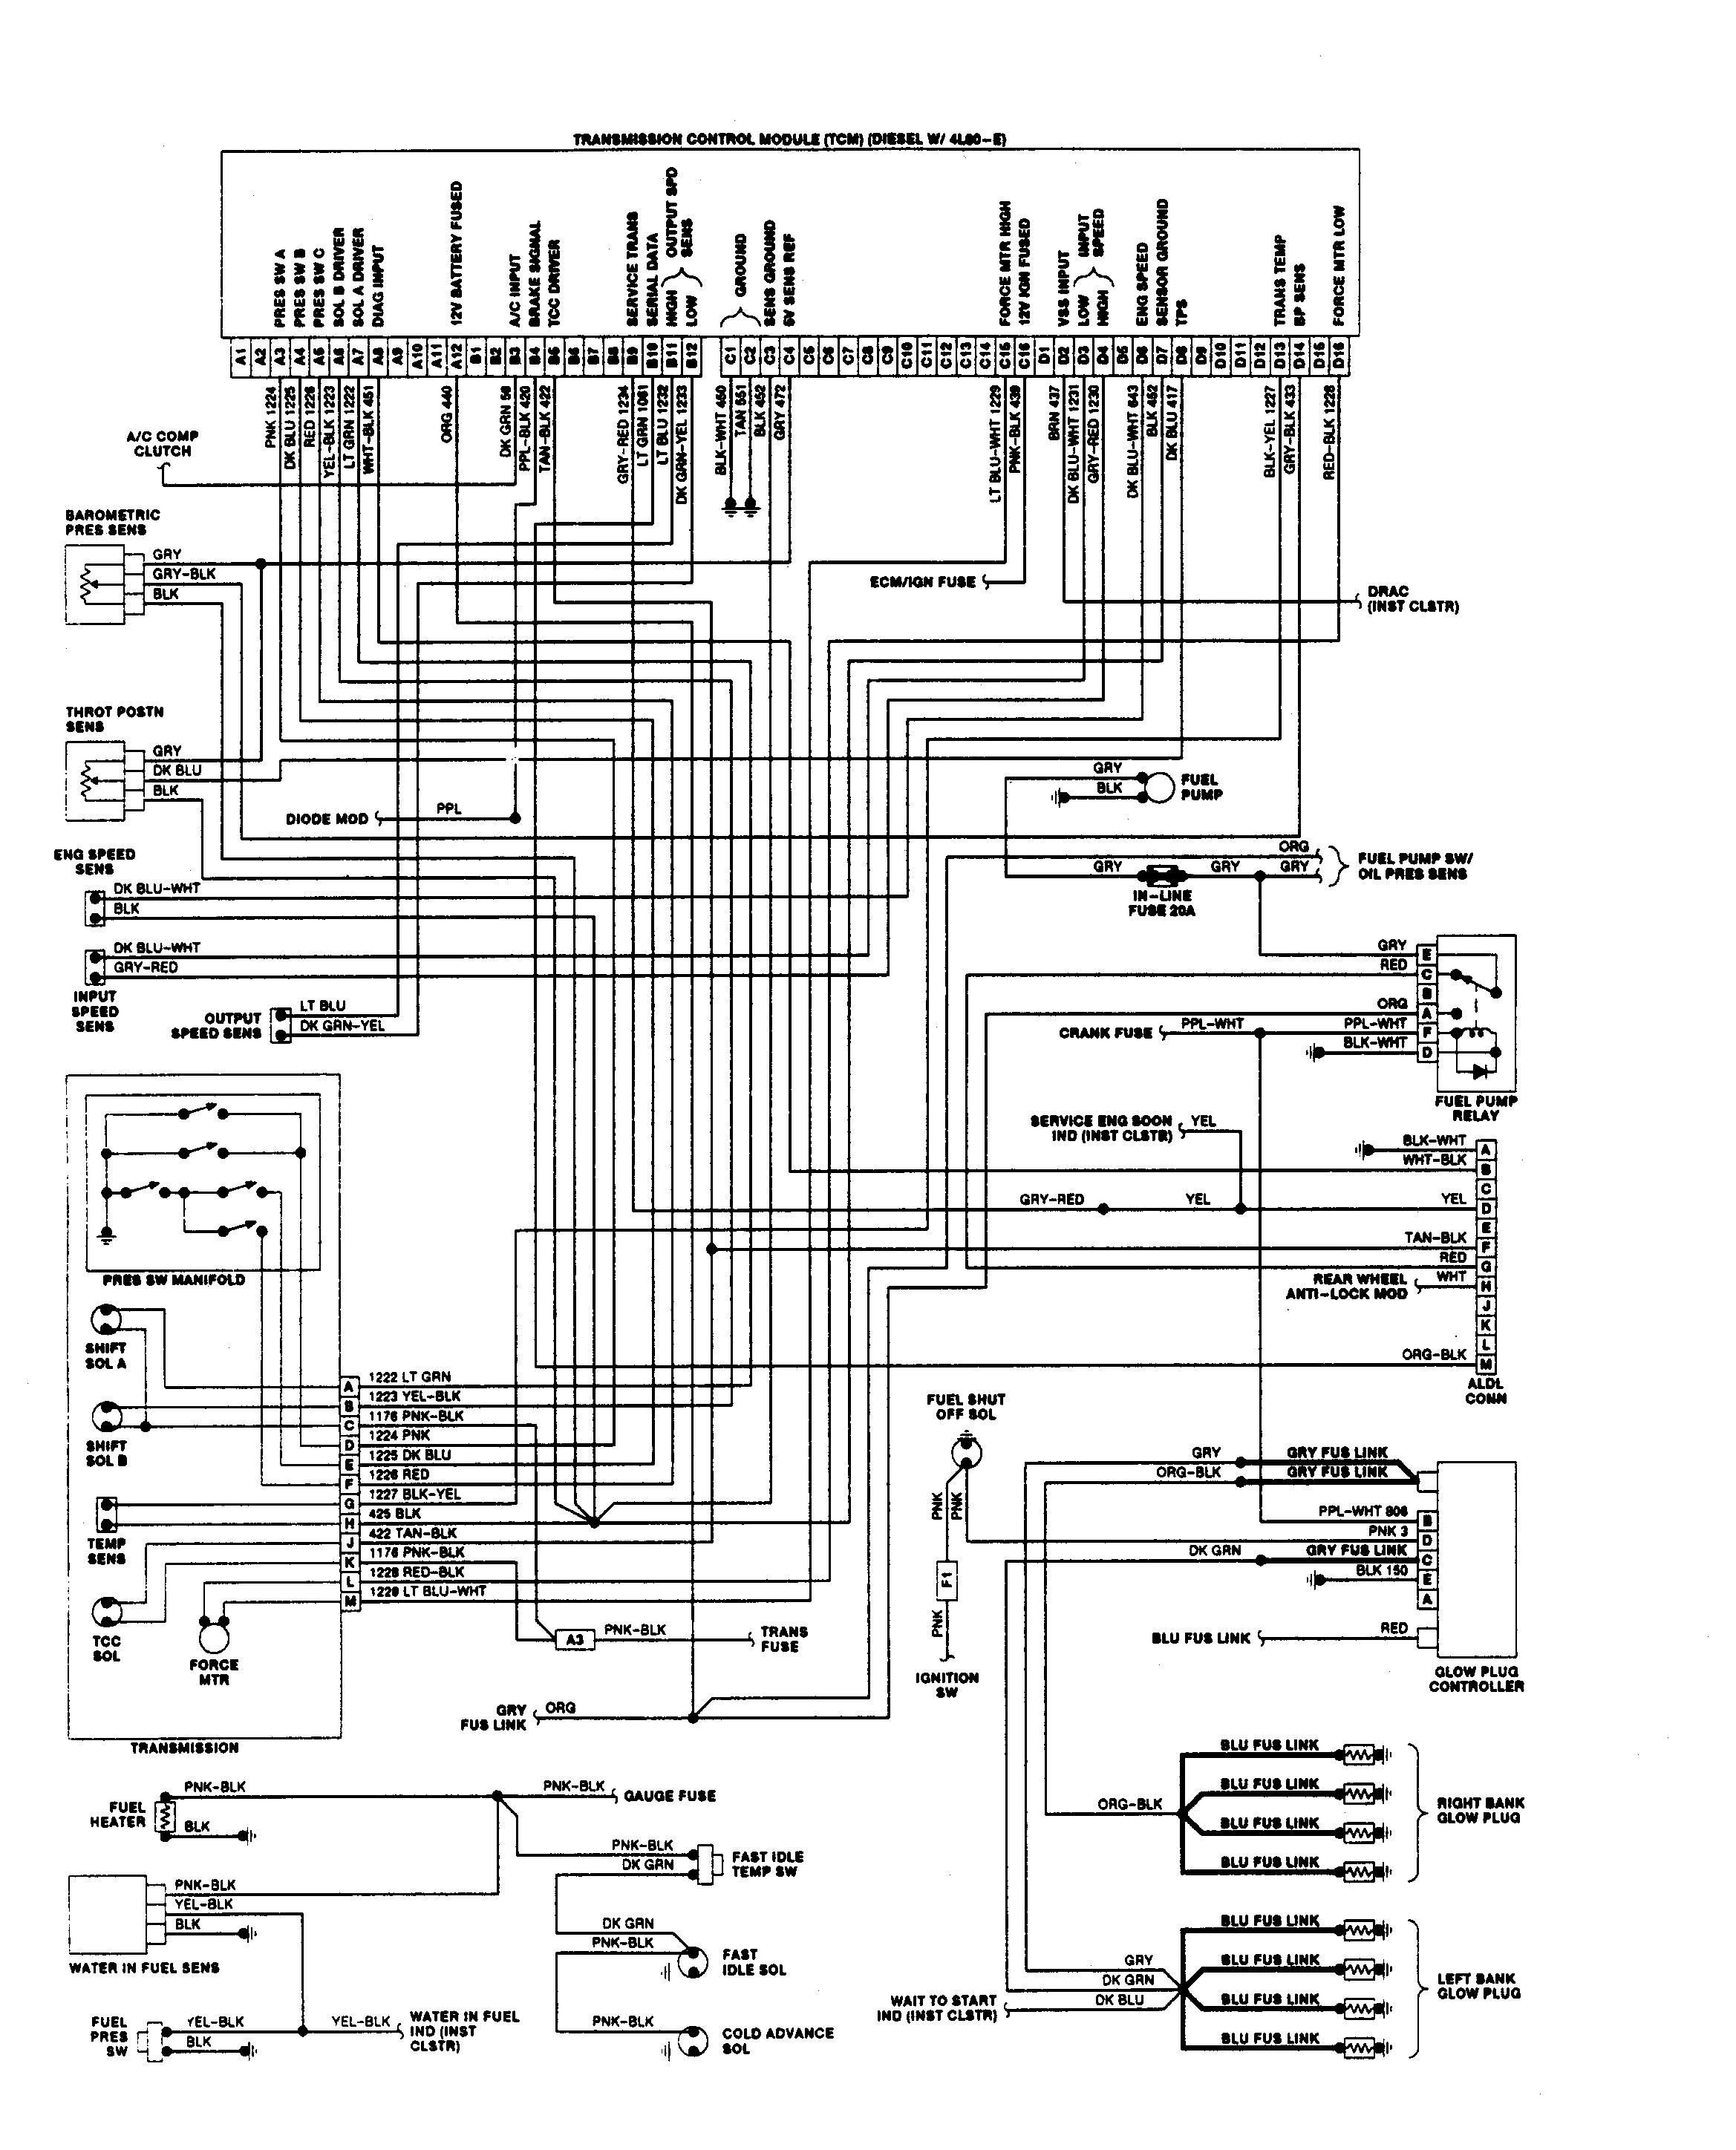 Wiring A 1985 Chevy Stering Coloumn Diagram] 1997 Chevy P30 Wiring Diagram Full Version Hd Of Wiring A 1985 Chevy Stering Coloumn